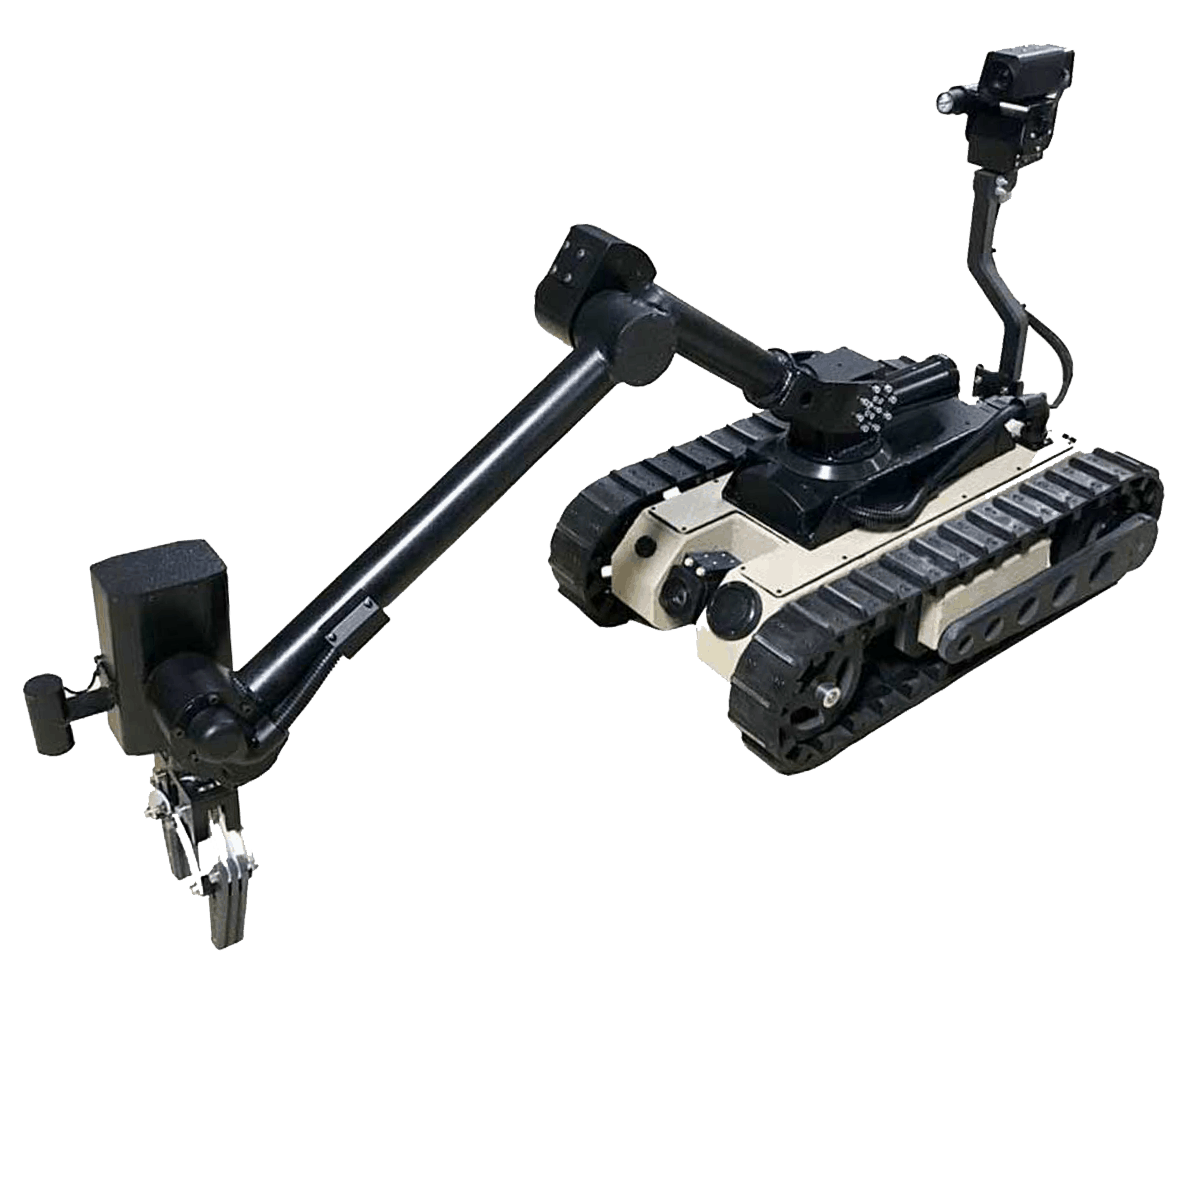 LT2-F with 6-Axis Robotic Arm